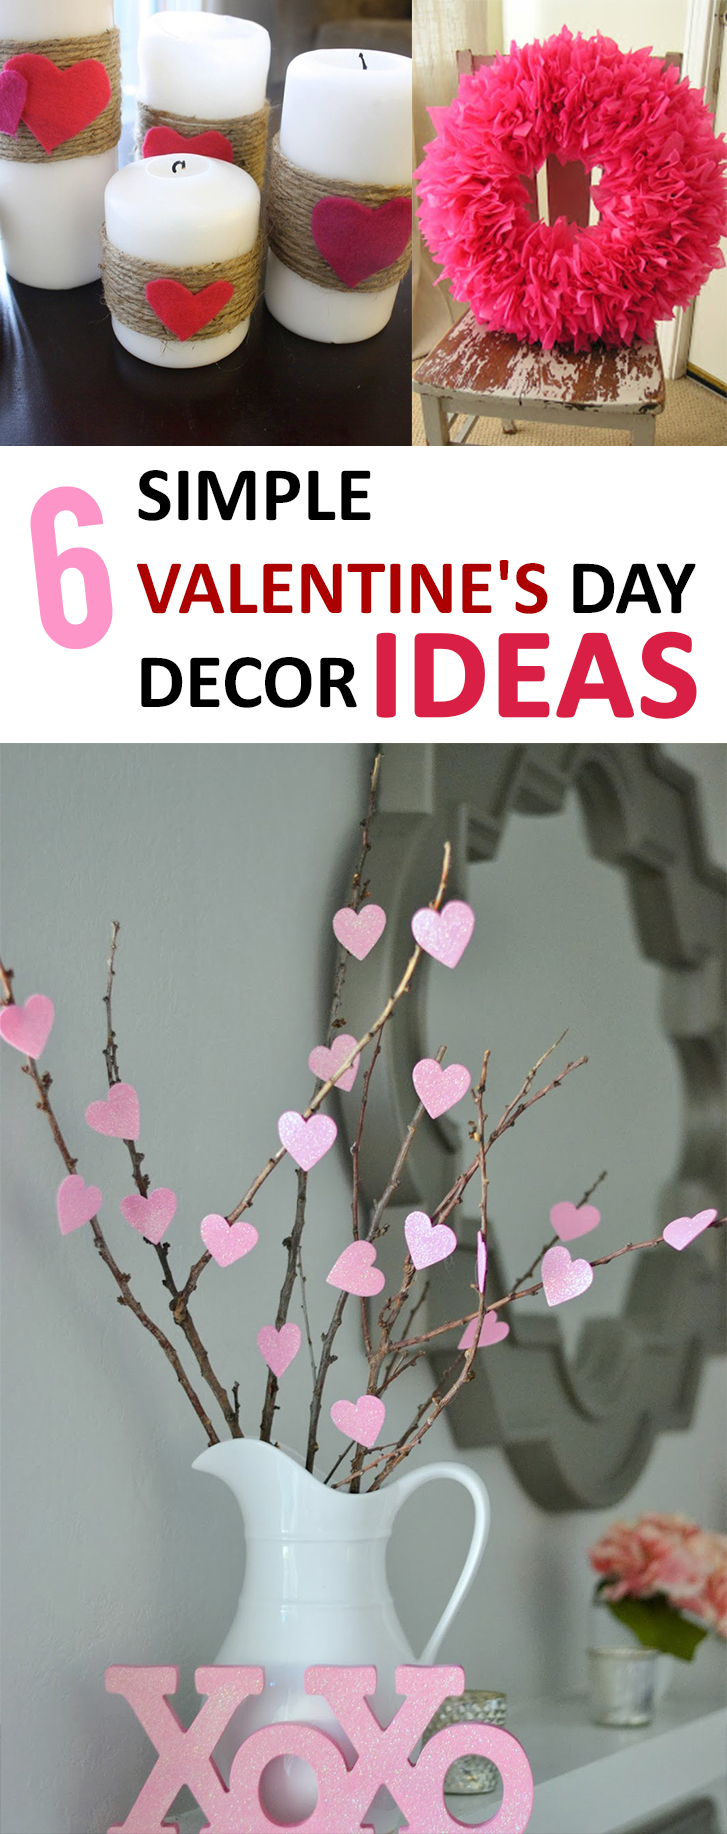 6 Simple Valentine's Day Decor Ideas